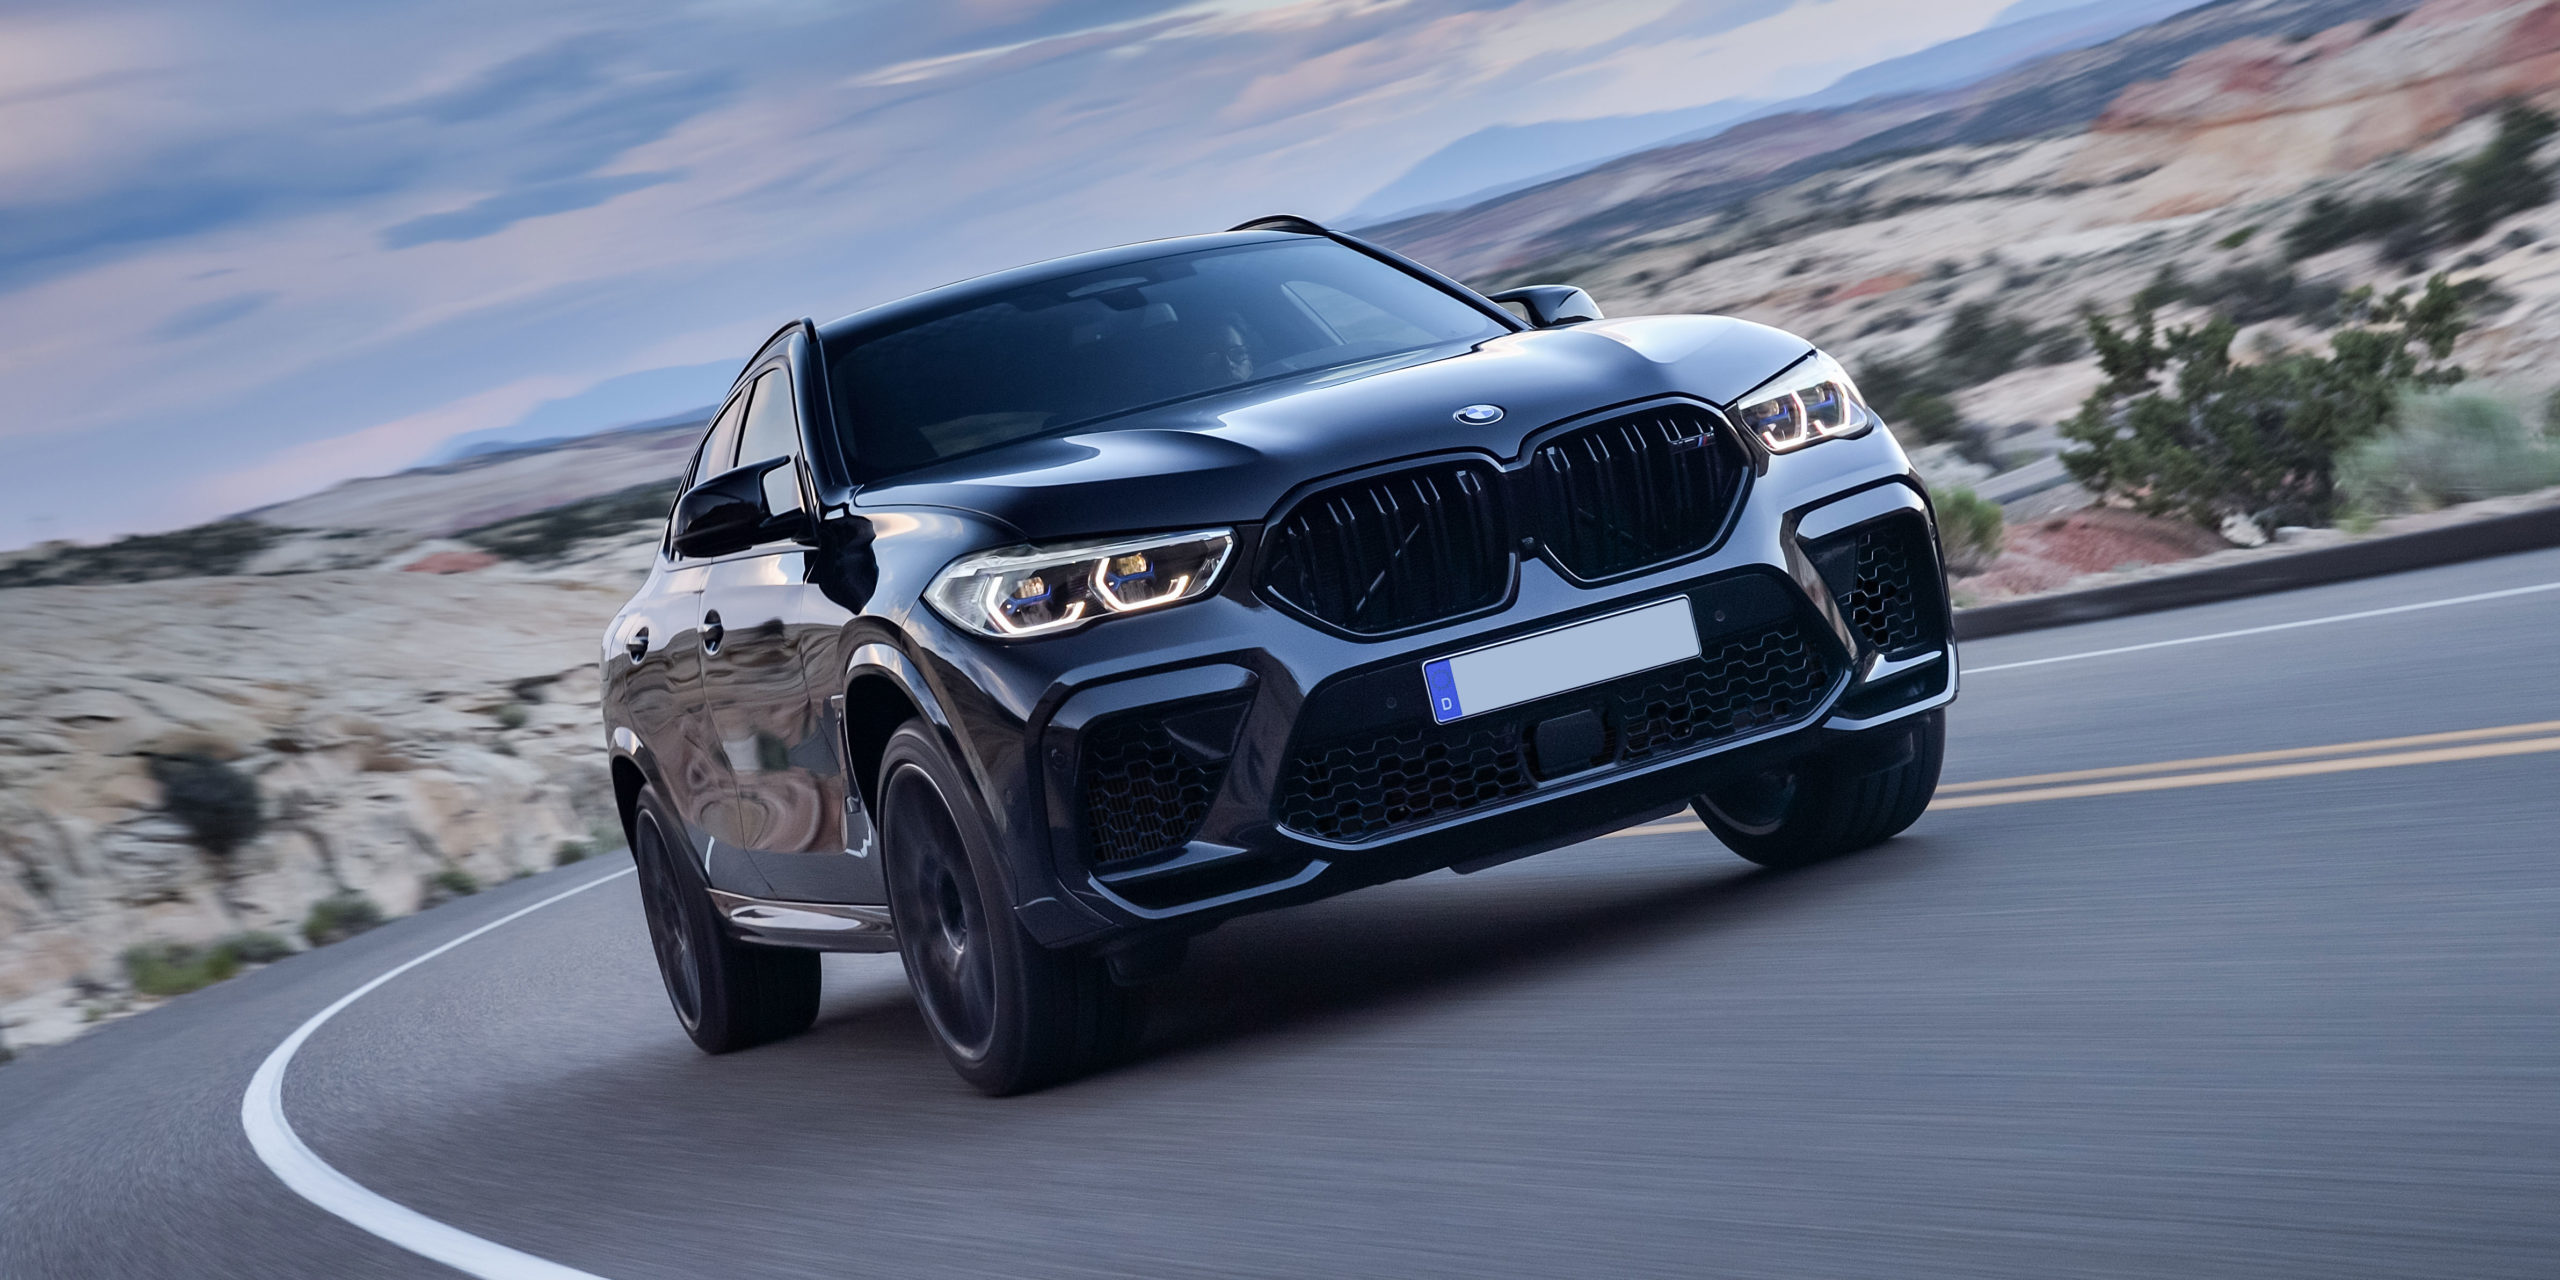 Bmw X6 M Competition Review 2021 Carwow